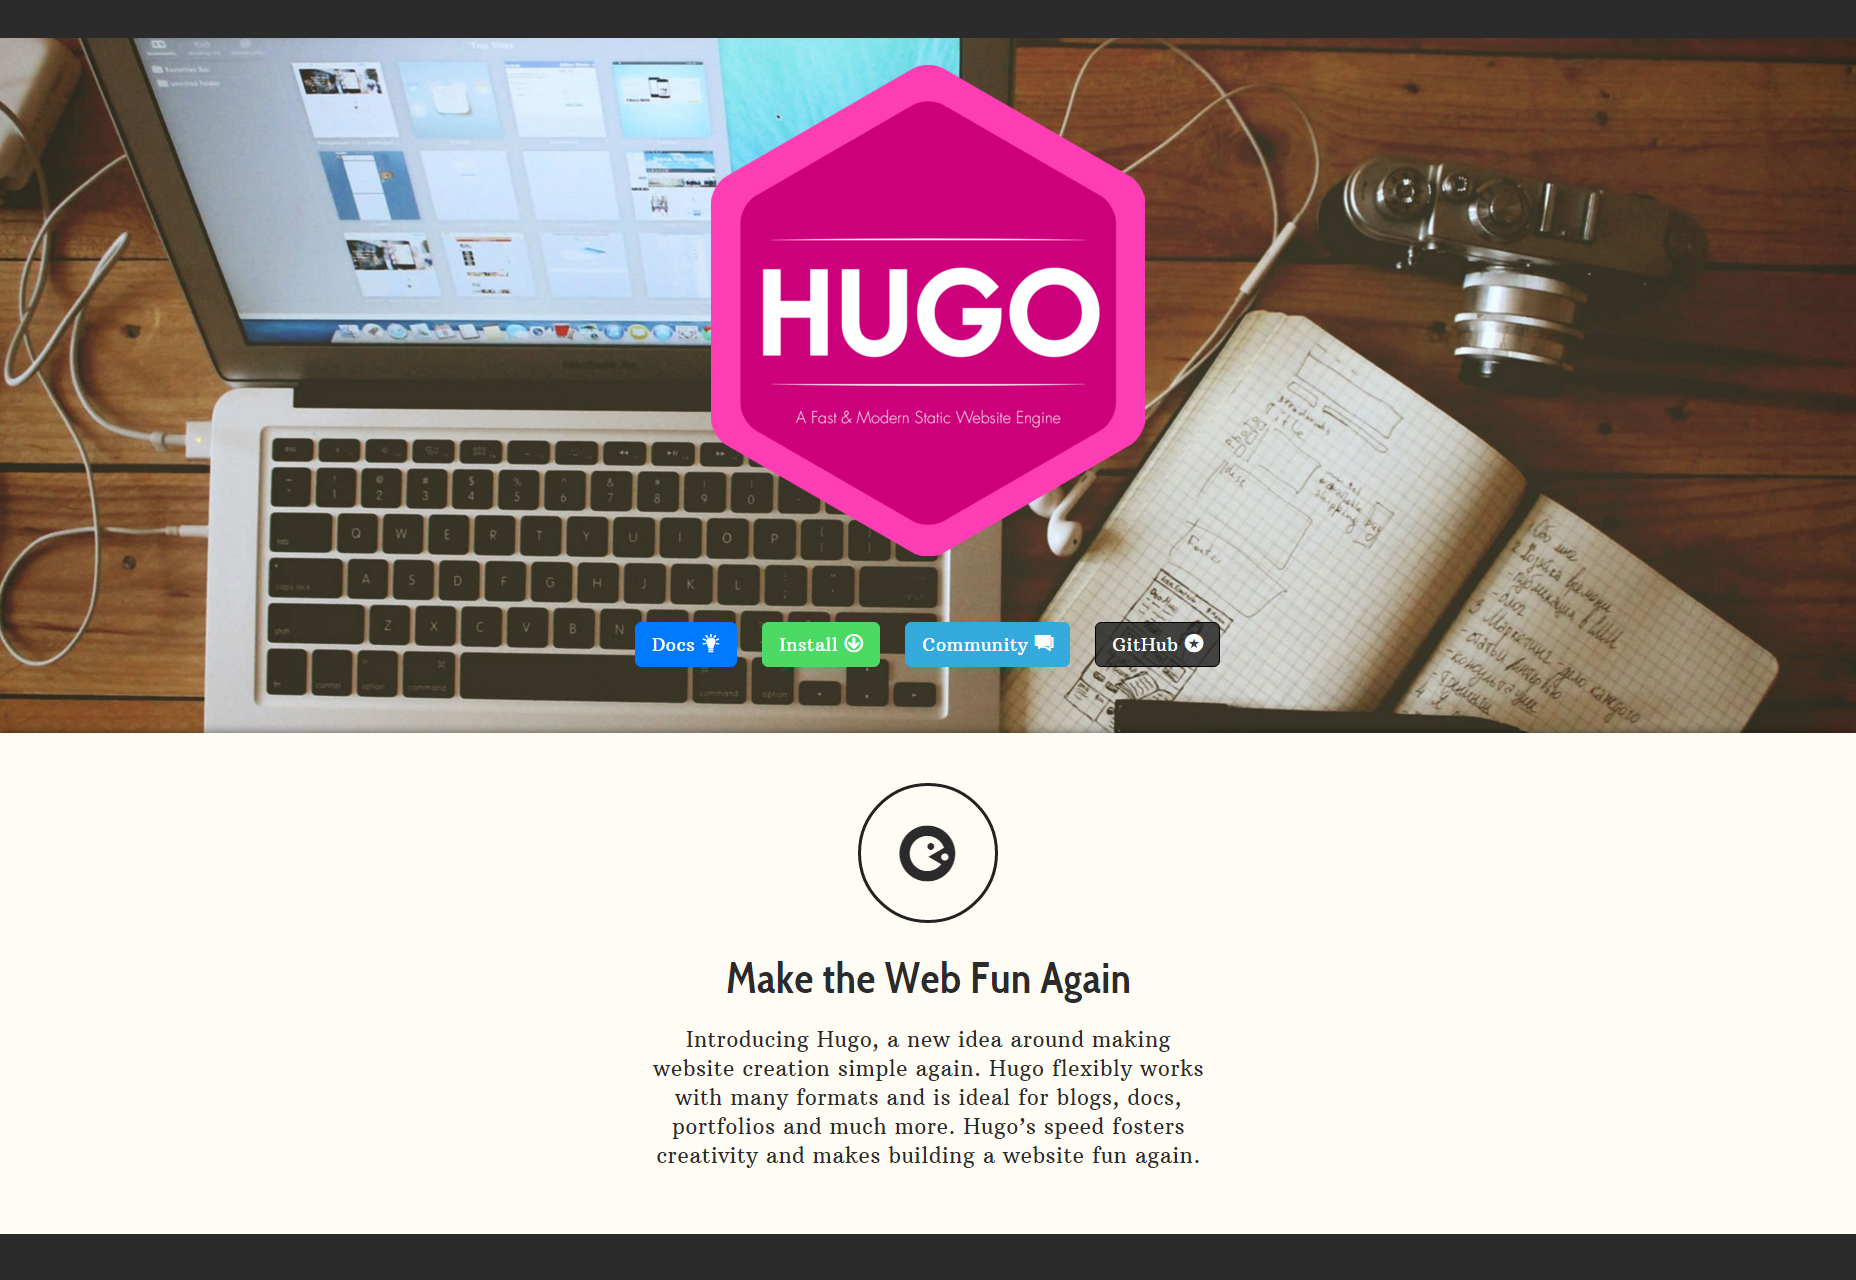 hugo-a-fast-and-modern-static-website-engine